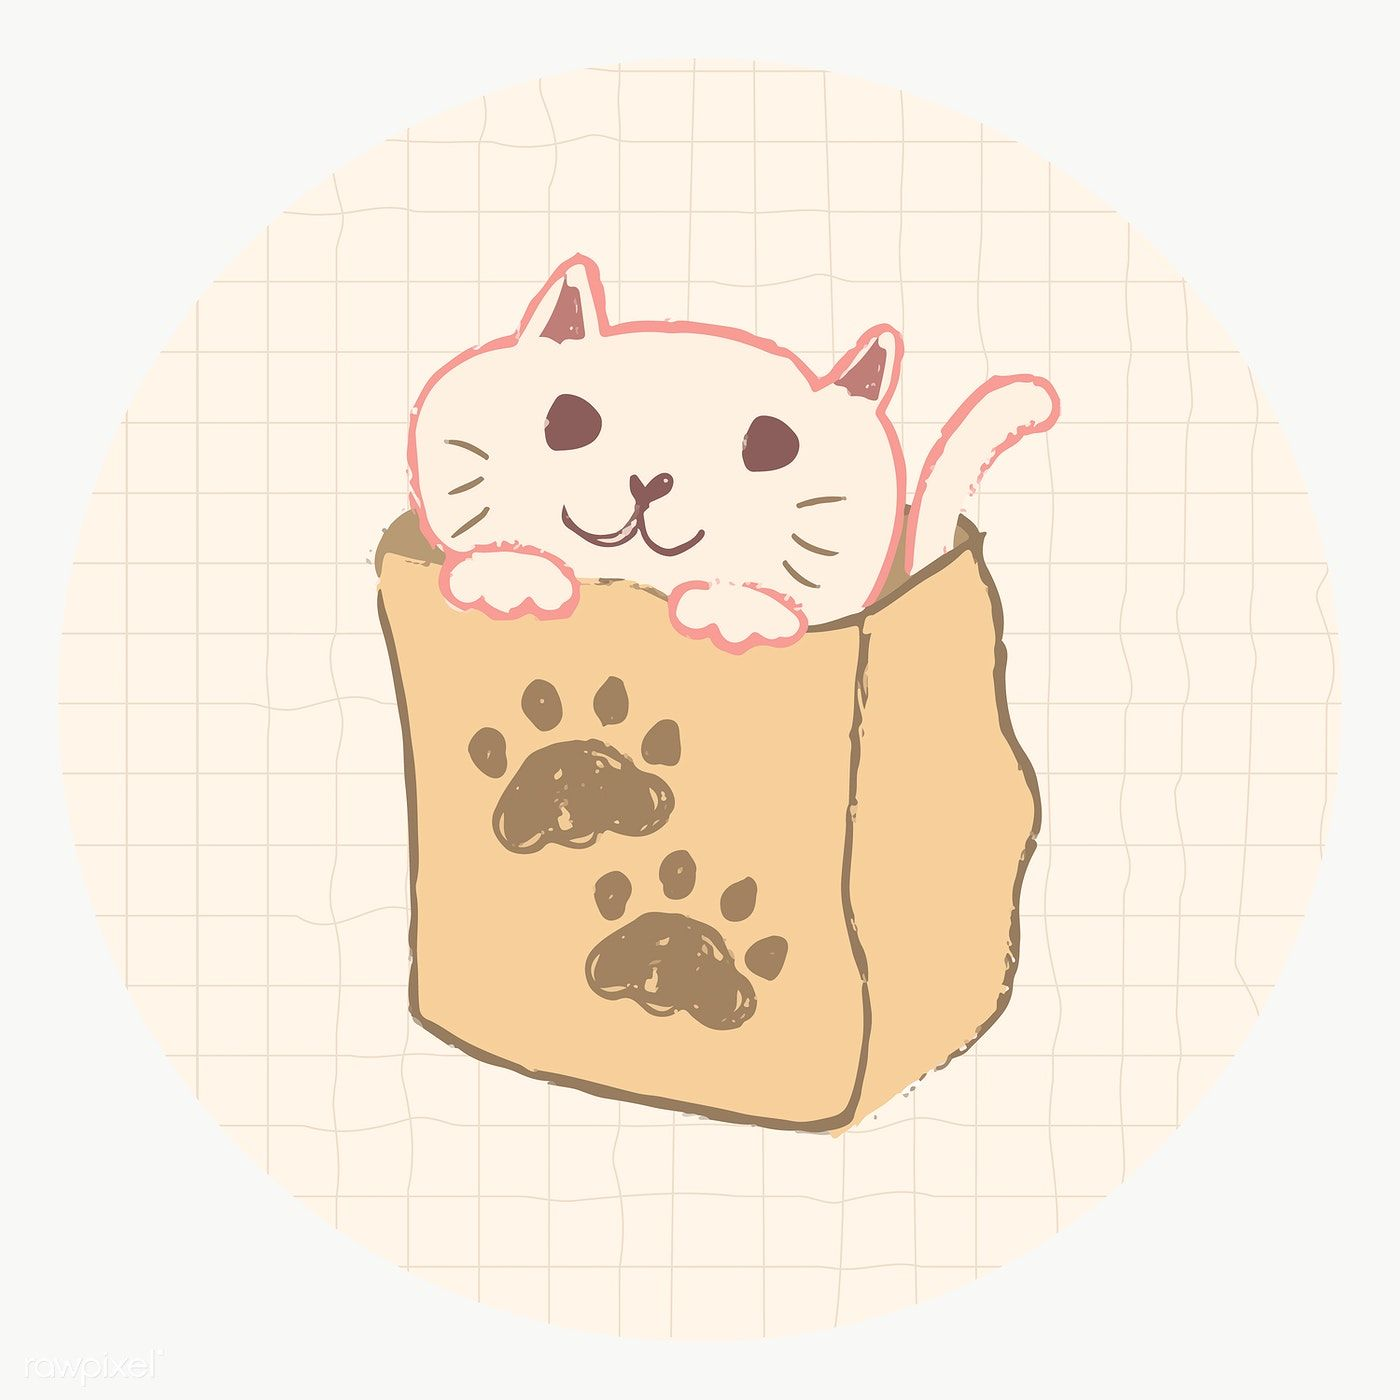 Cute Cat Story Highlights Icon For Social Media Transparent Png Free Image By Rawpixel Com Mind Story Highlights Happy Birthday Posters Cat Icon